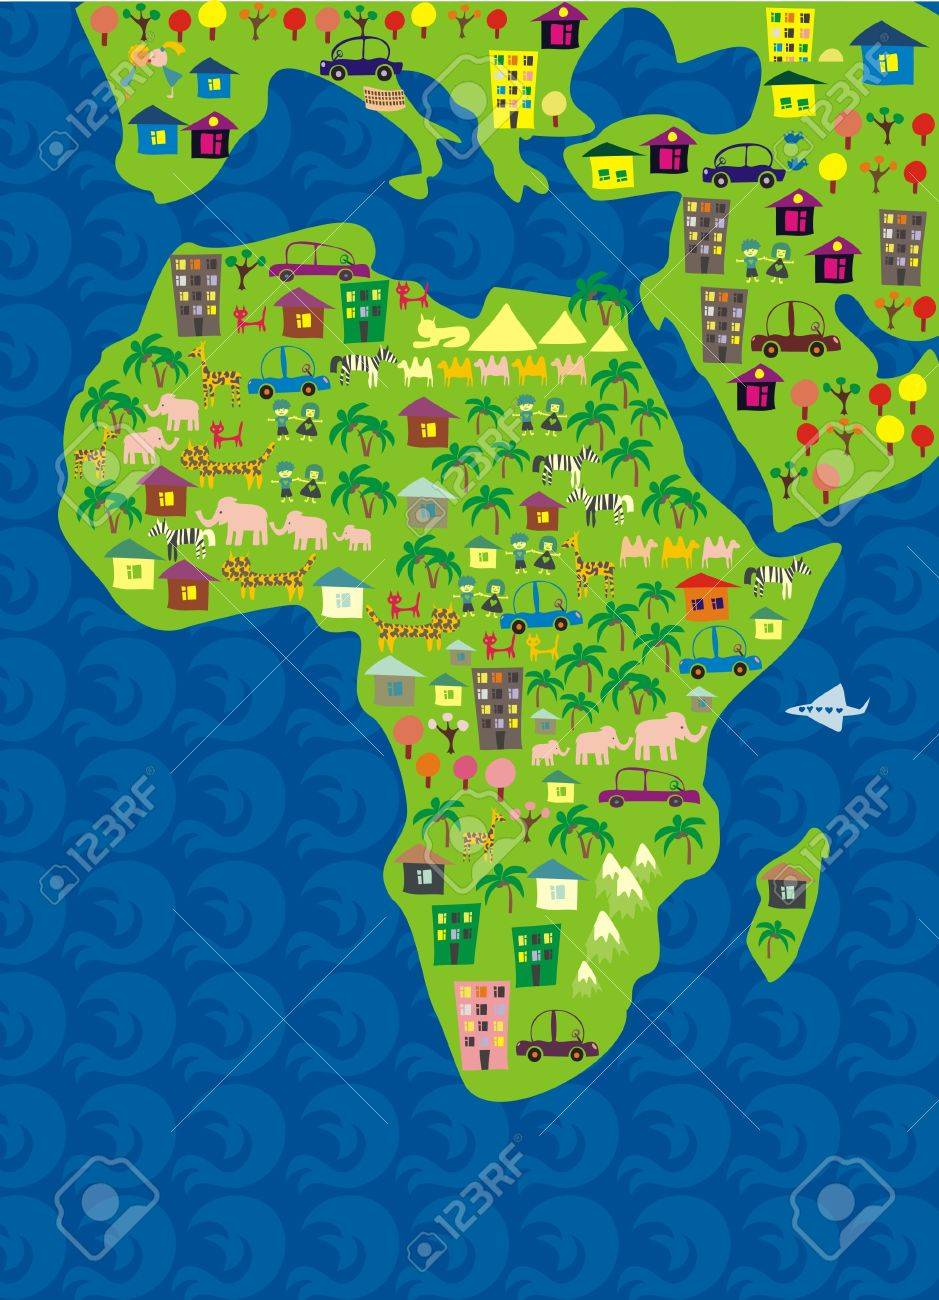 8 548 africa children cliparts stock vector and royalty free